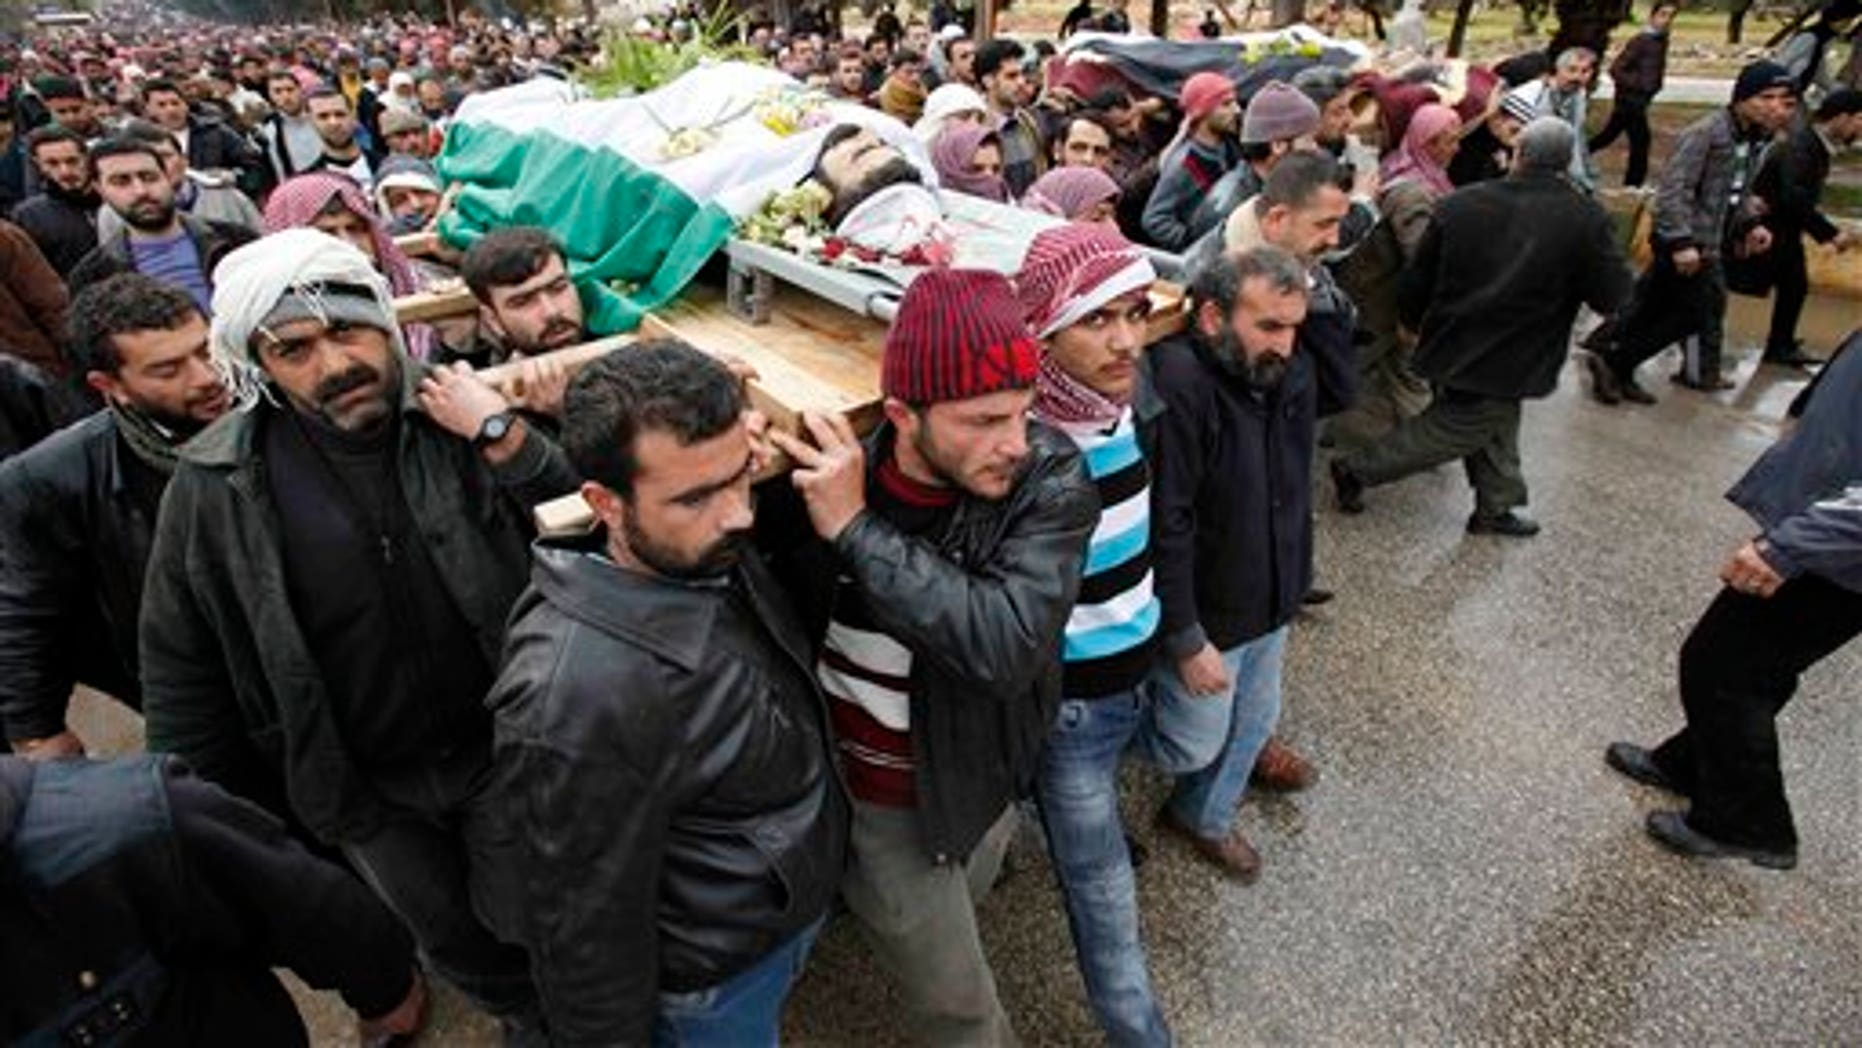 Feb. 9: Mourners carry a body during a funeral for a 10-year-old boy and rebel fighters killed during fighting in Idlib, Syria.